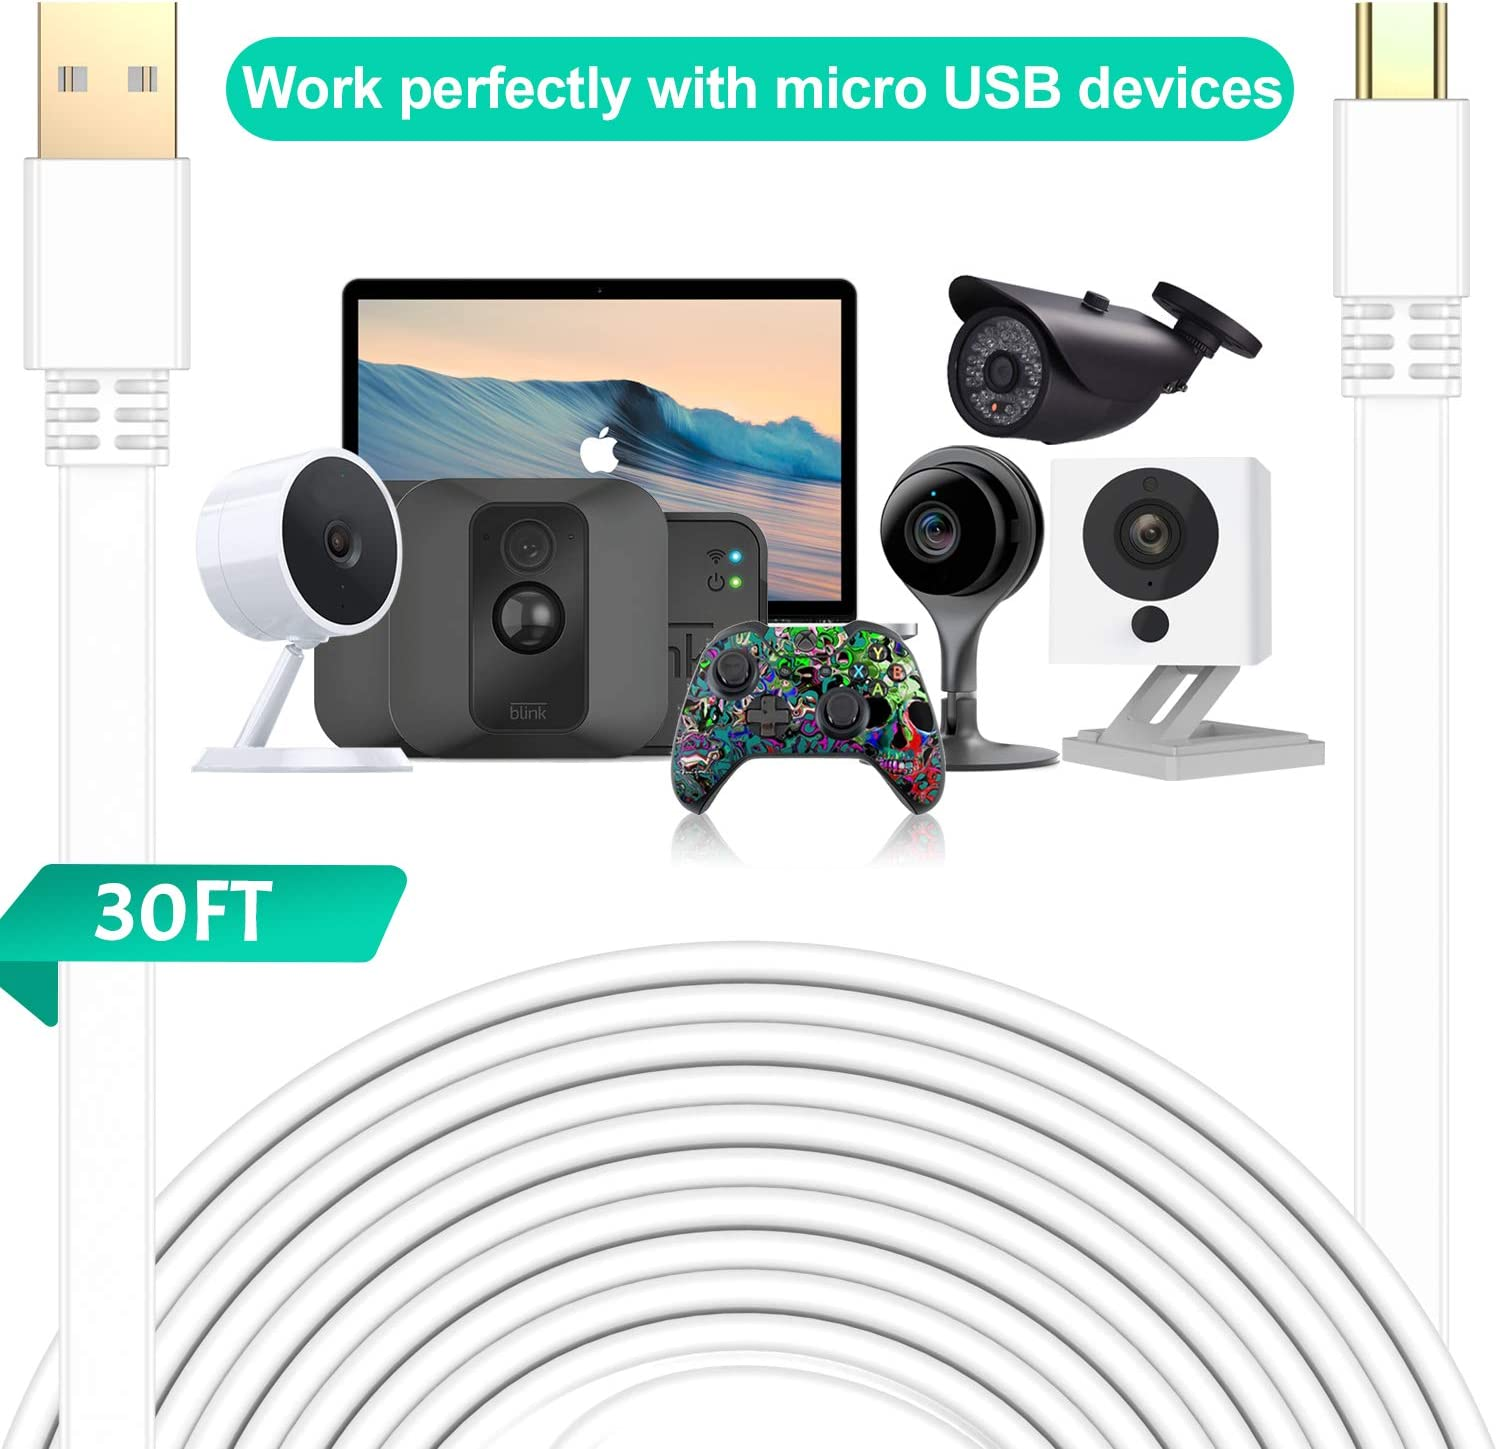 30FT//9M, Black ,Flat Micro USB Charging Cord,Charger for Wyze Cam Pan,Yi Cam,Nest Cam,Blink XT Camera,Furbo Dog,Arlo Q,Netvue,Xbox One Controller 2 Pack Elebase Micro USB Power Cable 30 Feet